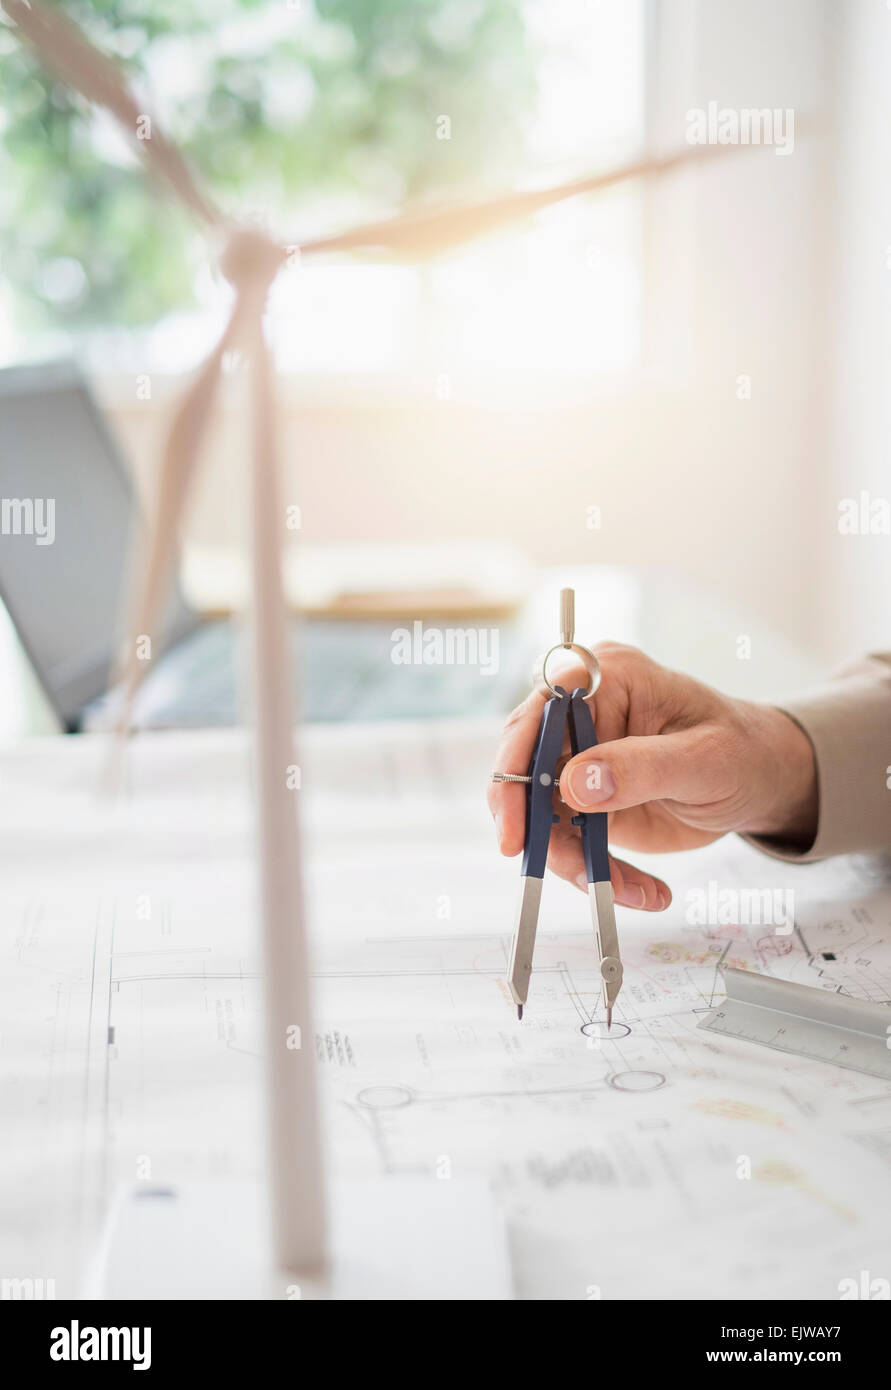 Close up of man's hands using compass while drawing plans - Stock Image